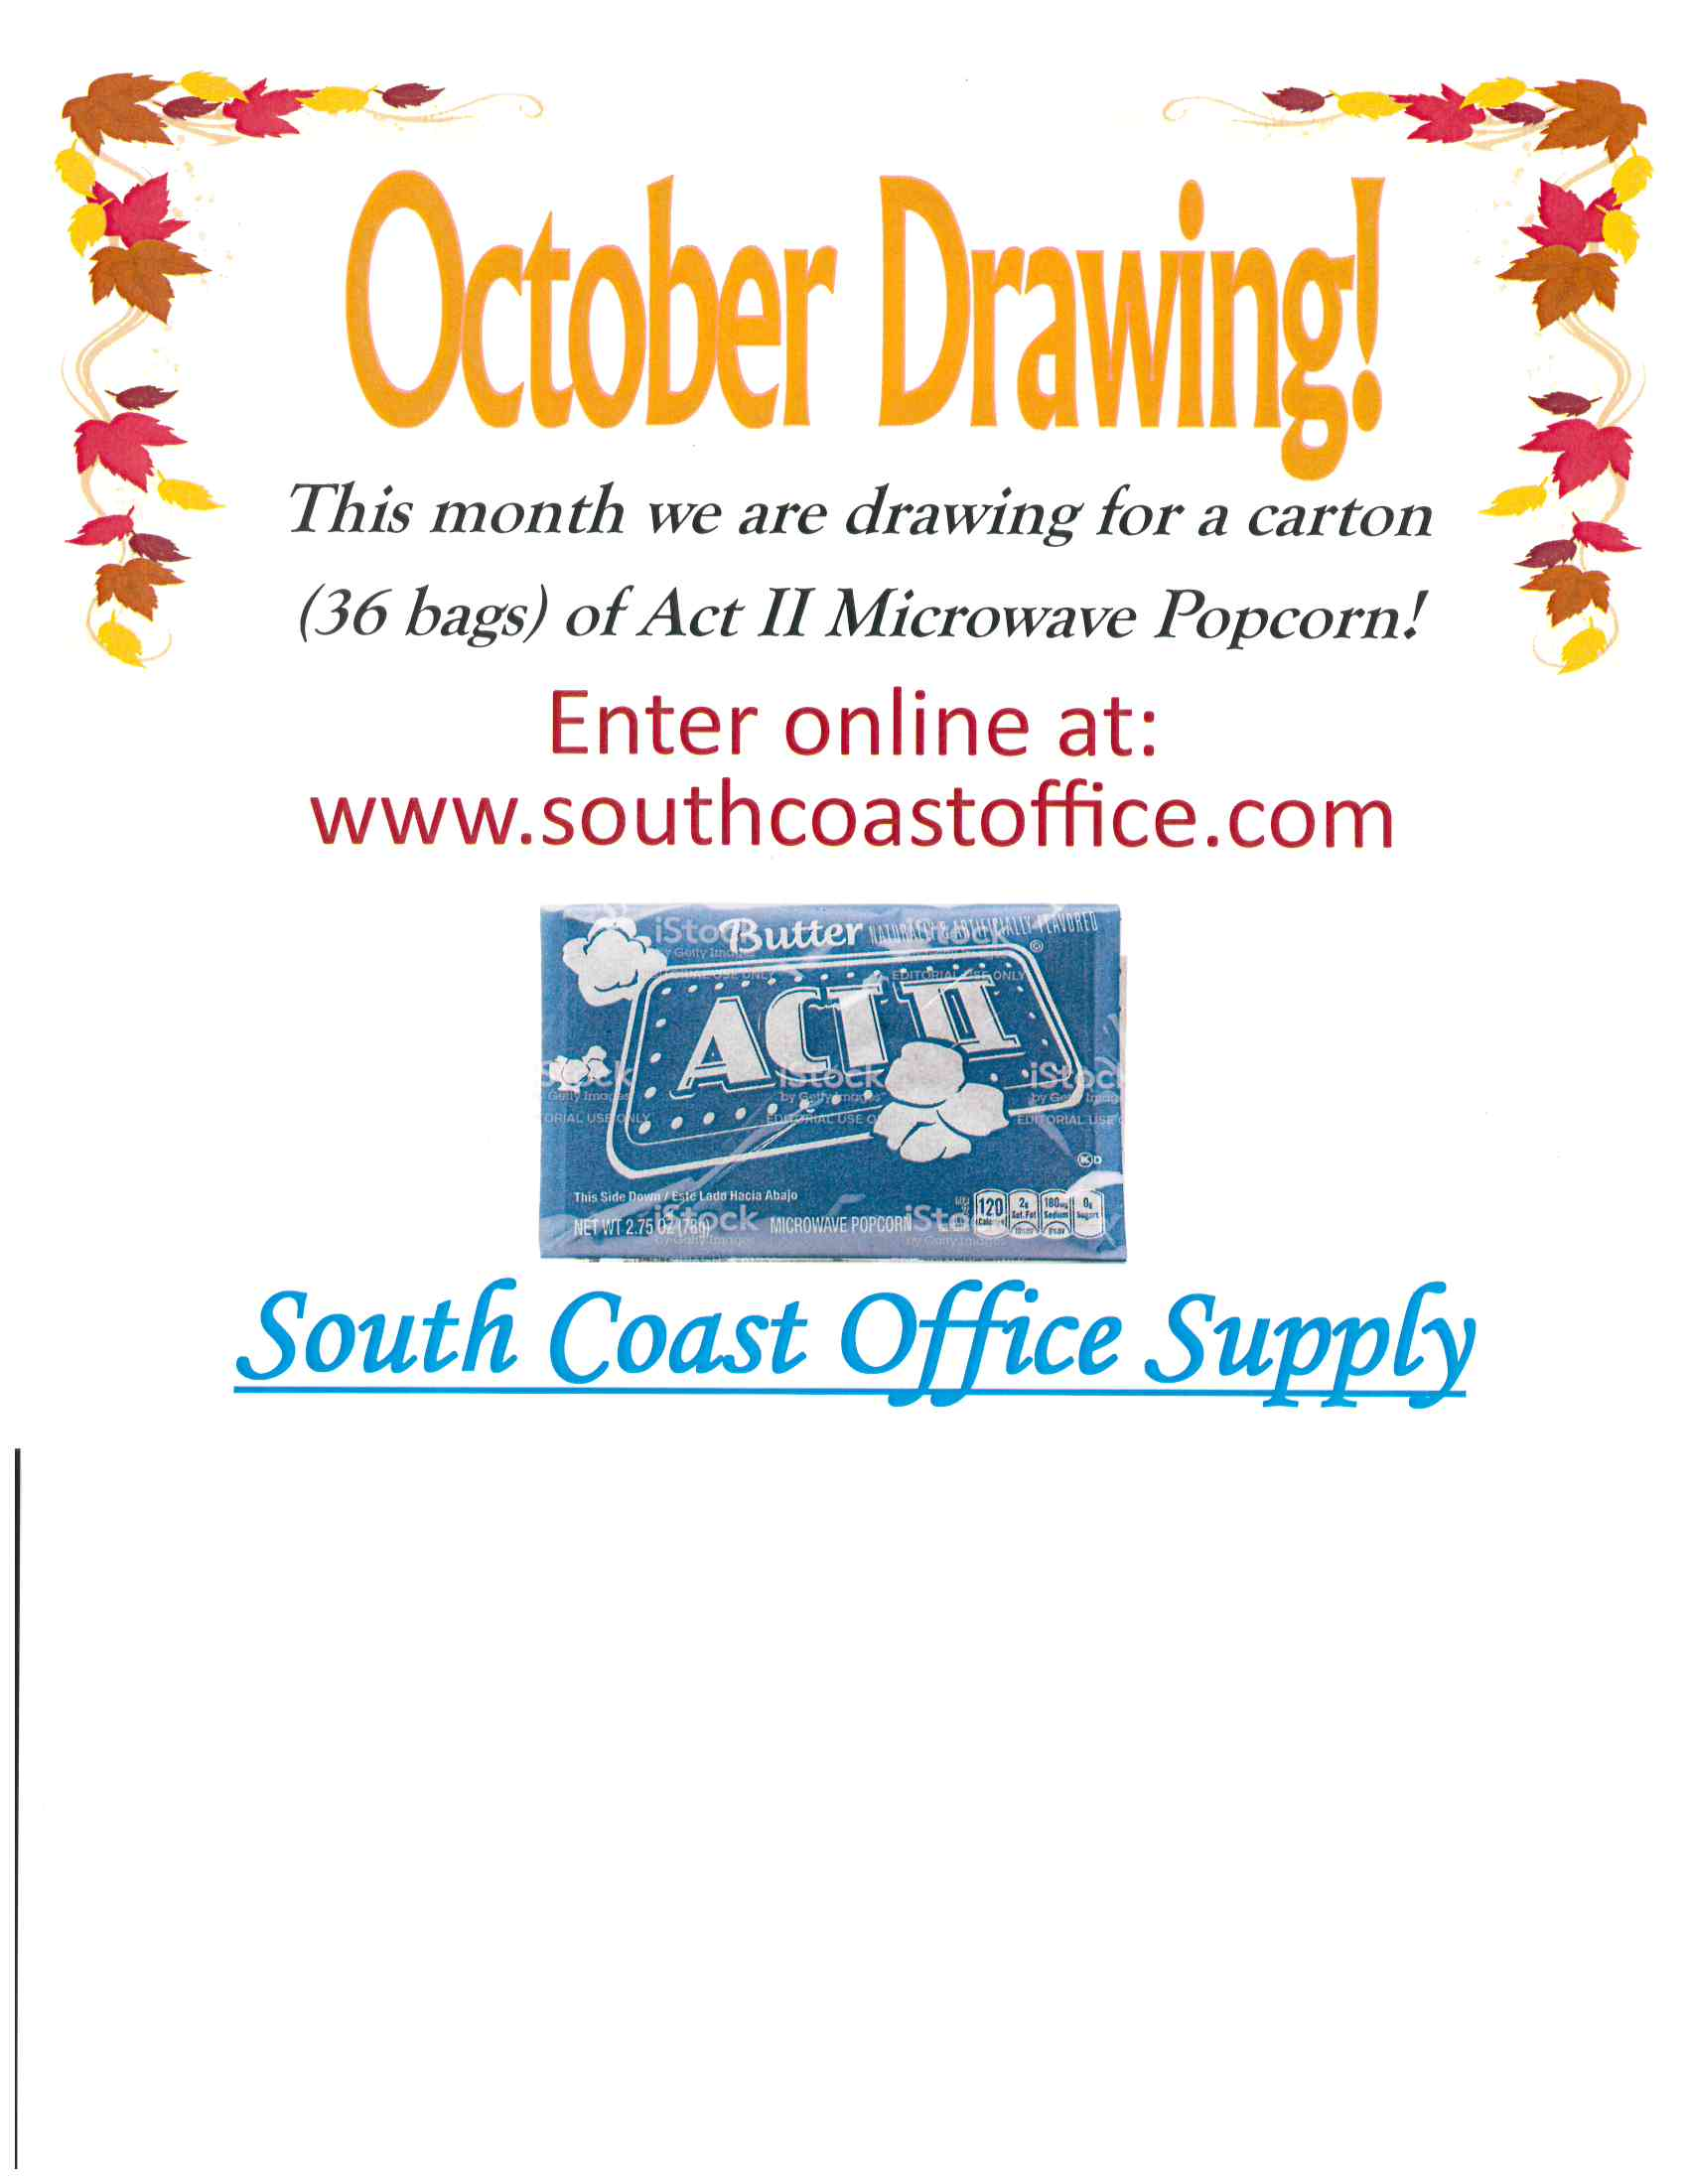 South Coast Office Supply Coos Bay